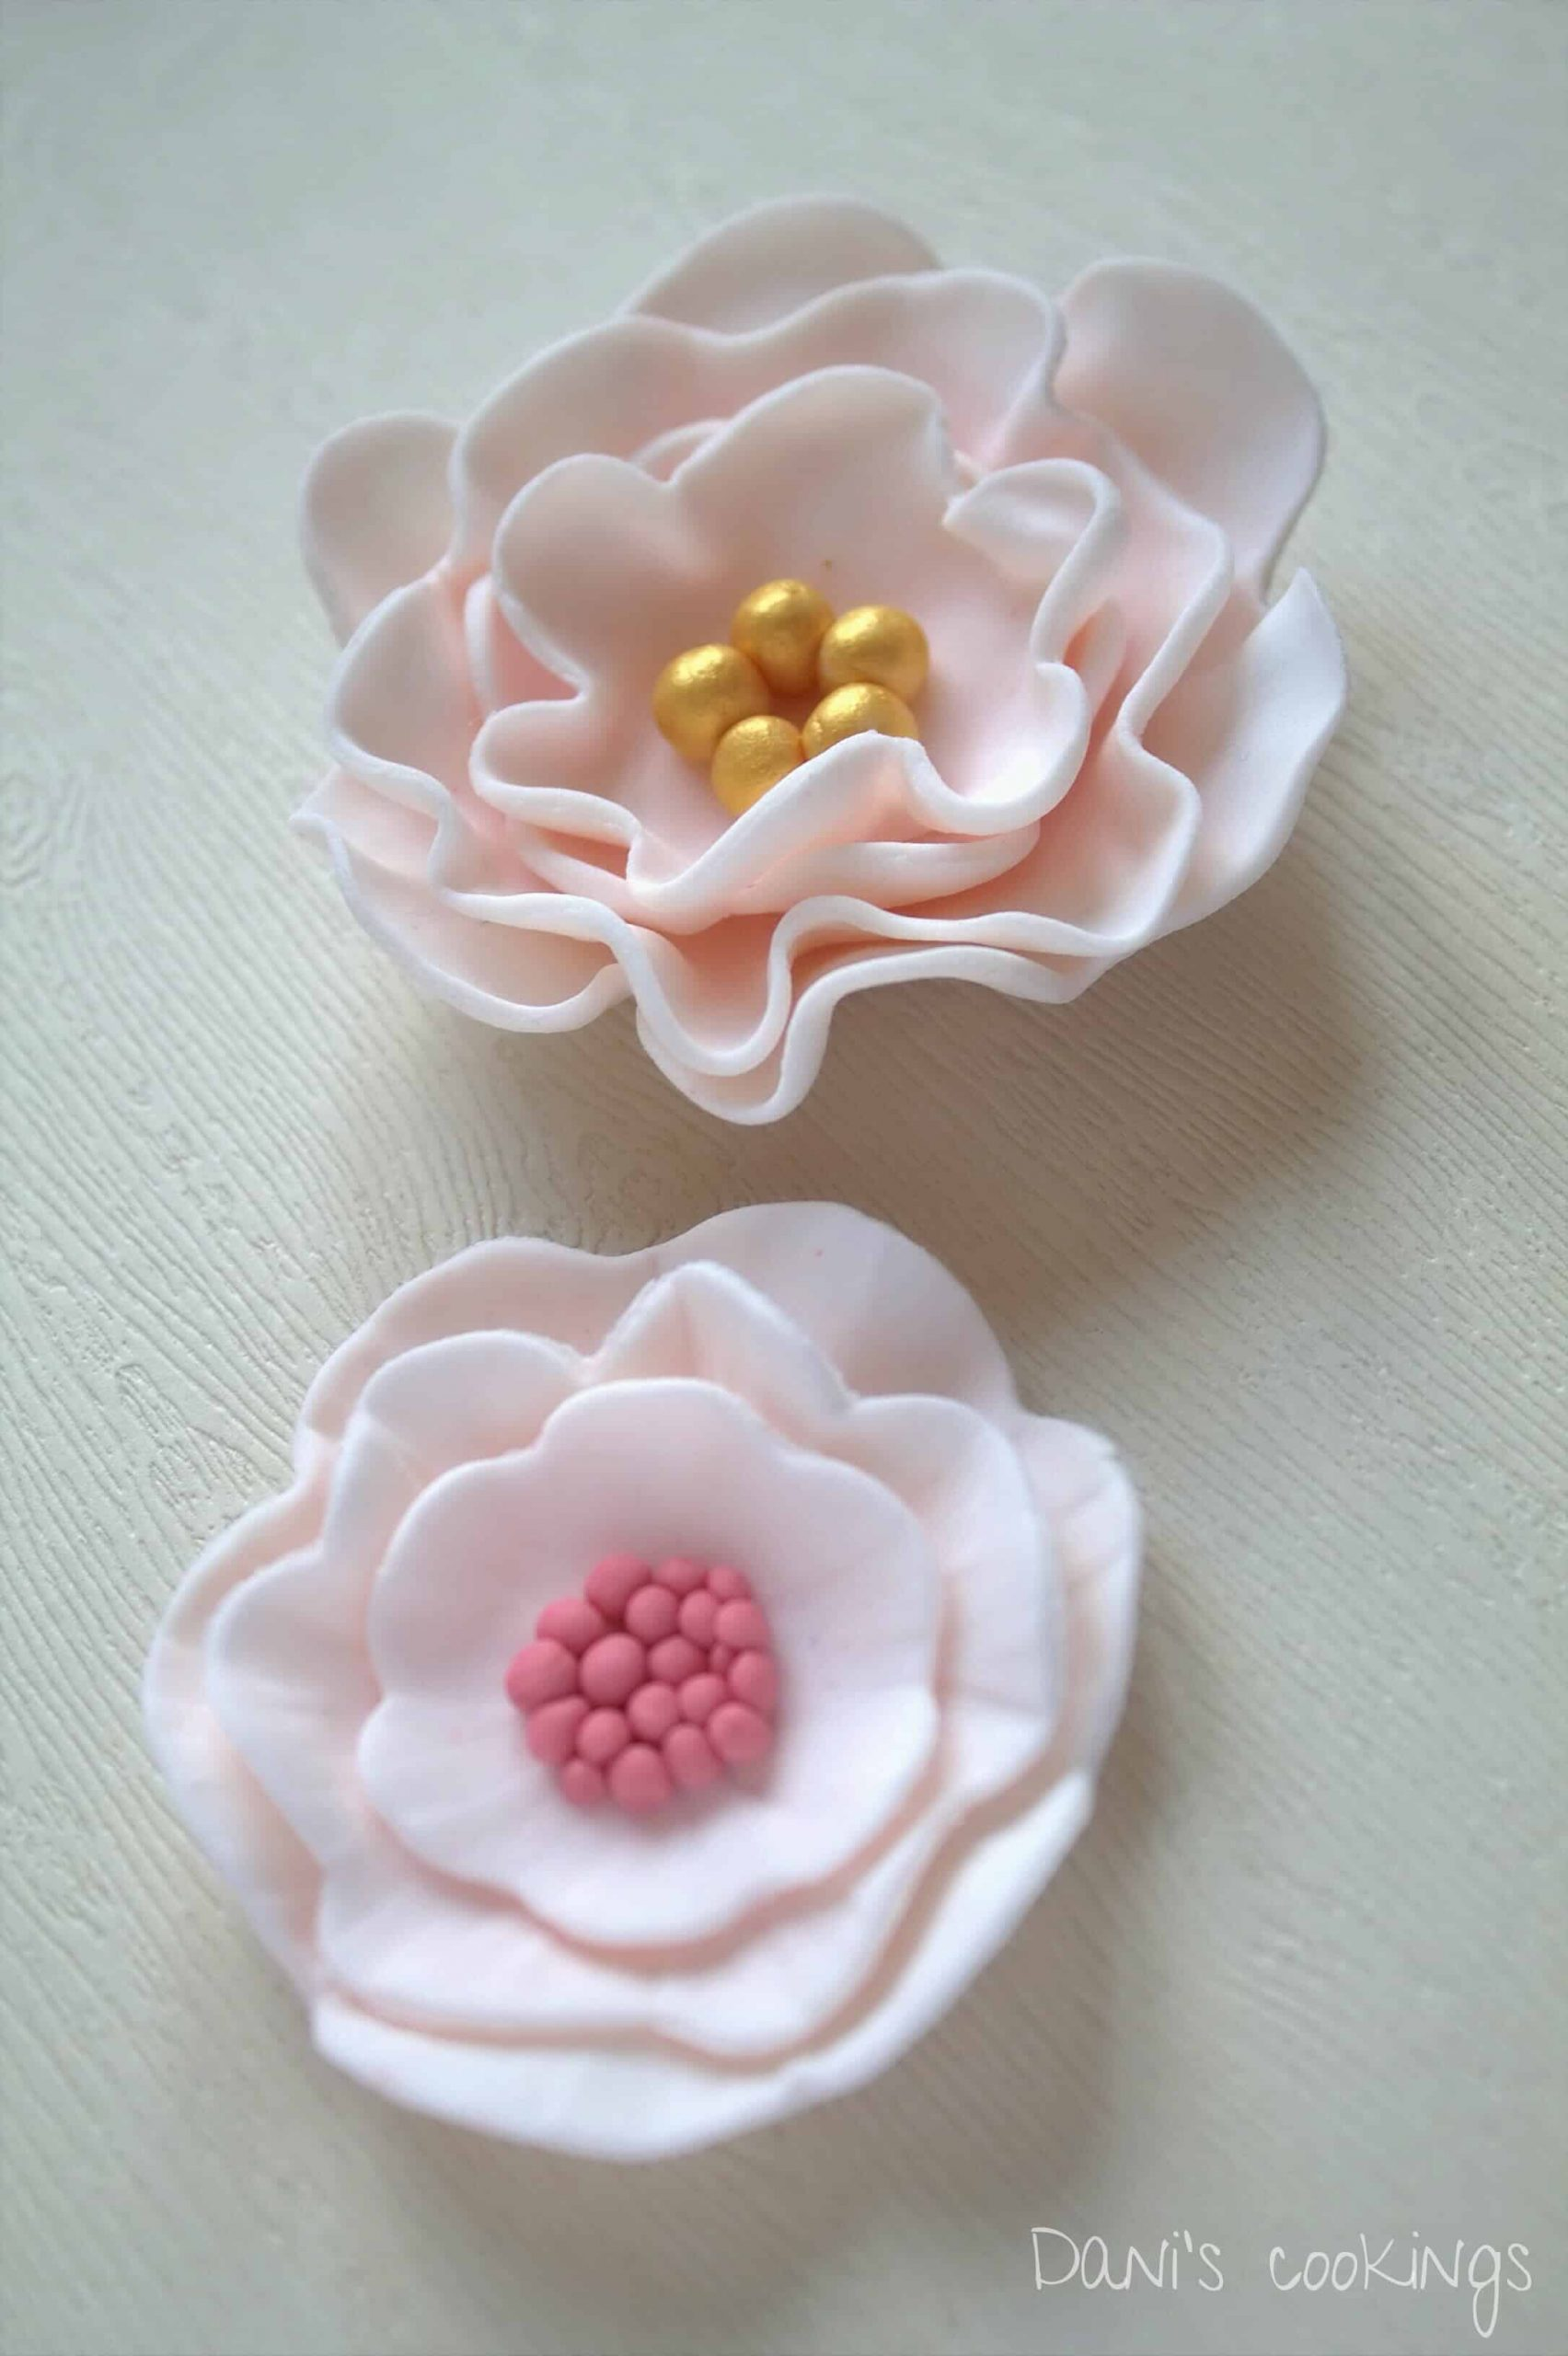 two fondant flowers on a wooden surface